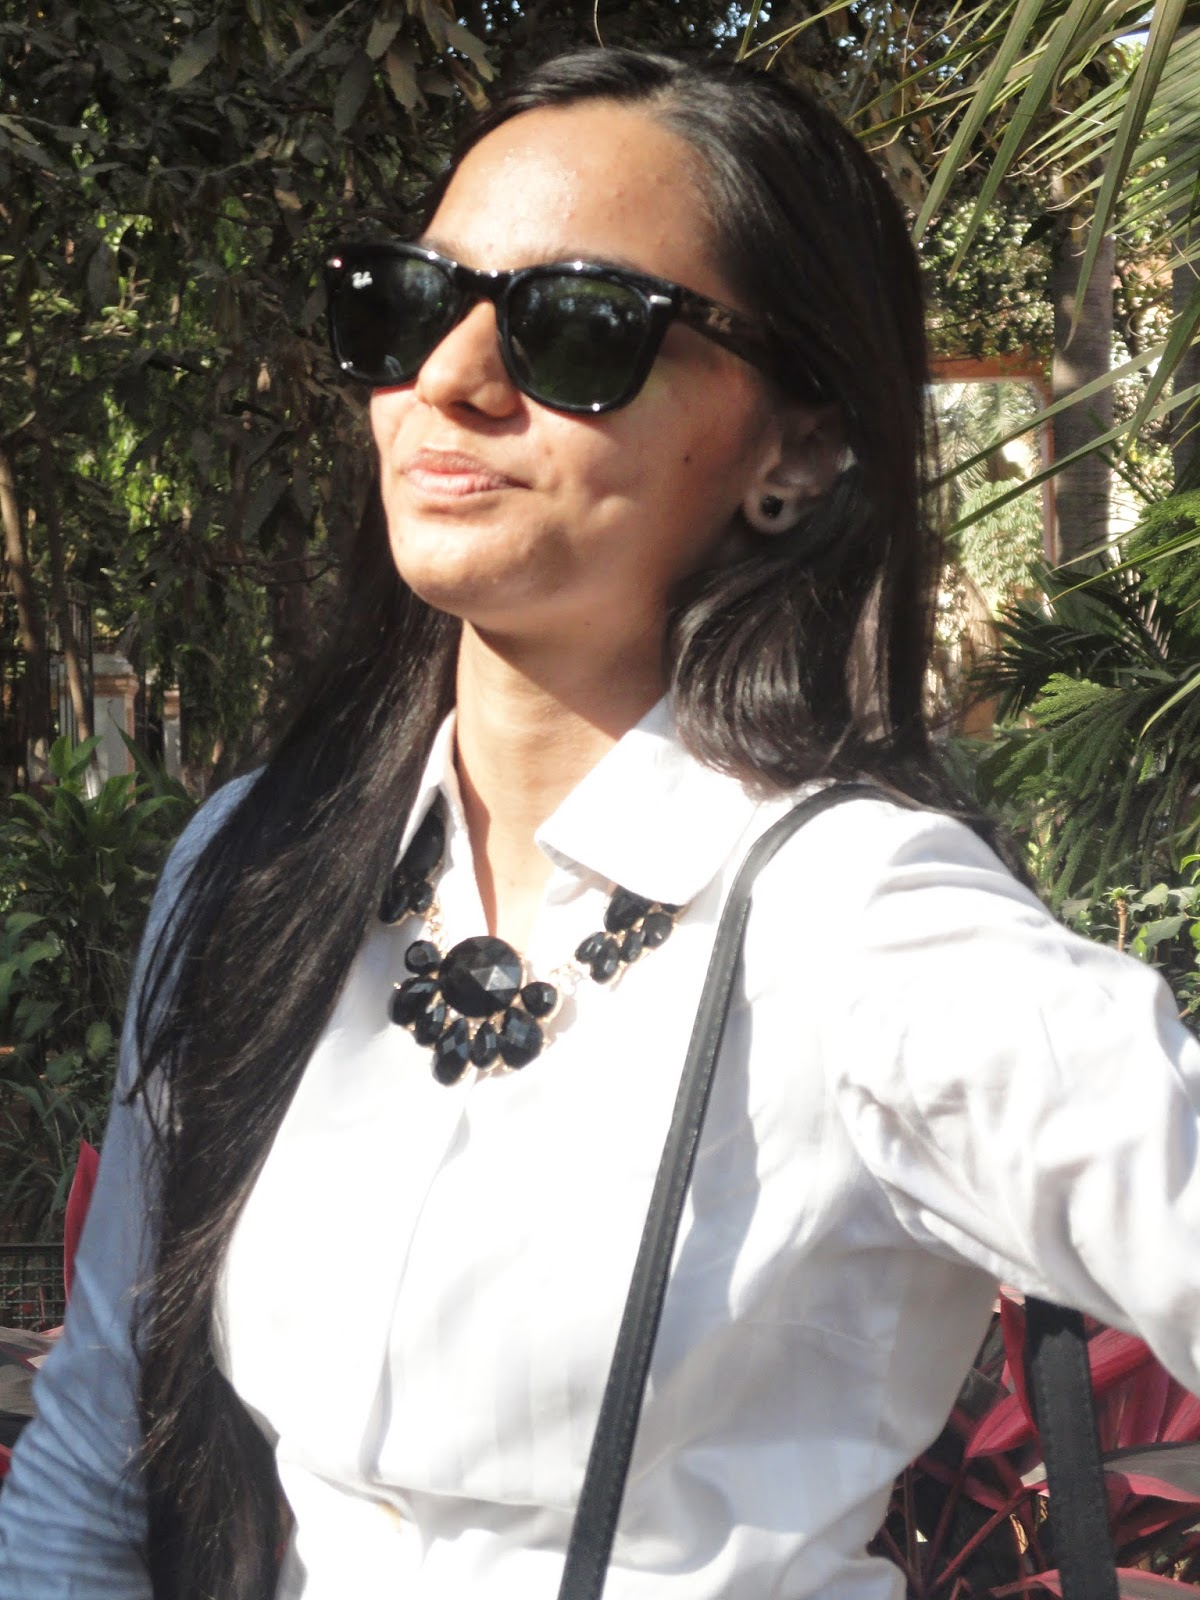 indian fashion blogger, mumbai fashion blog, workwear outfits, everyday fashion, look for less, thrifty fashion, street shopping in mumbai, statement necklace, jewellry